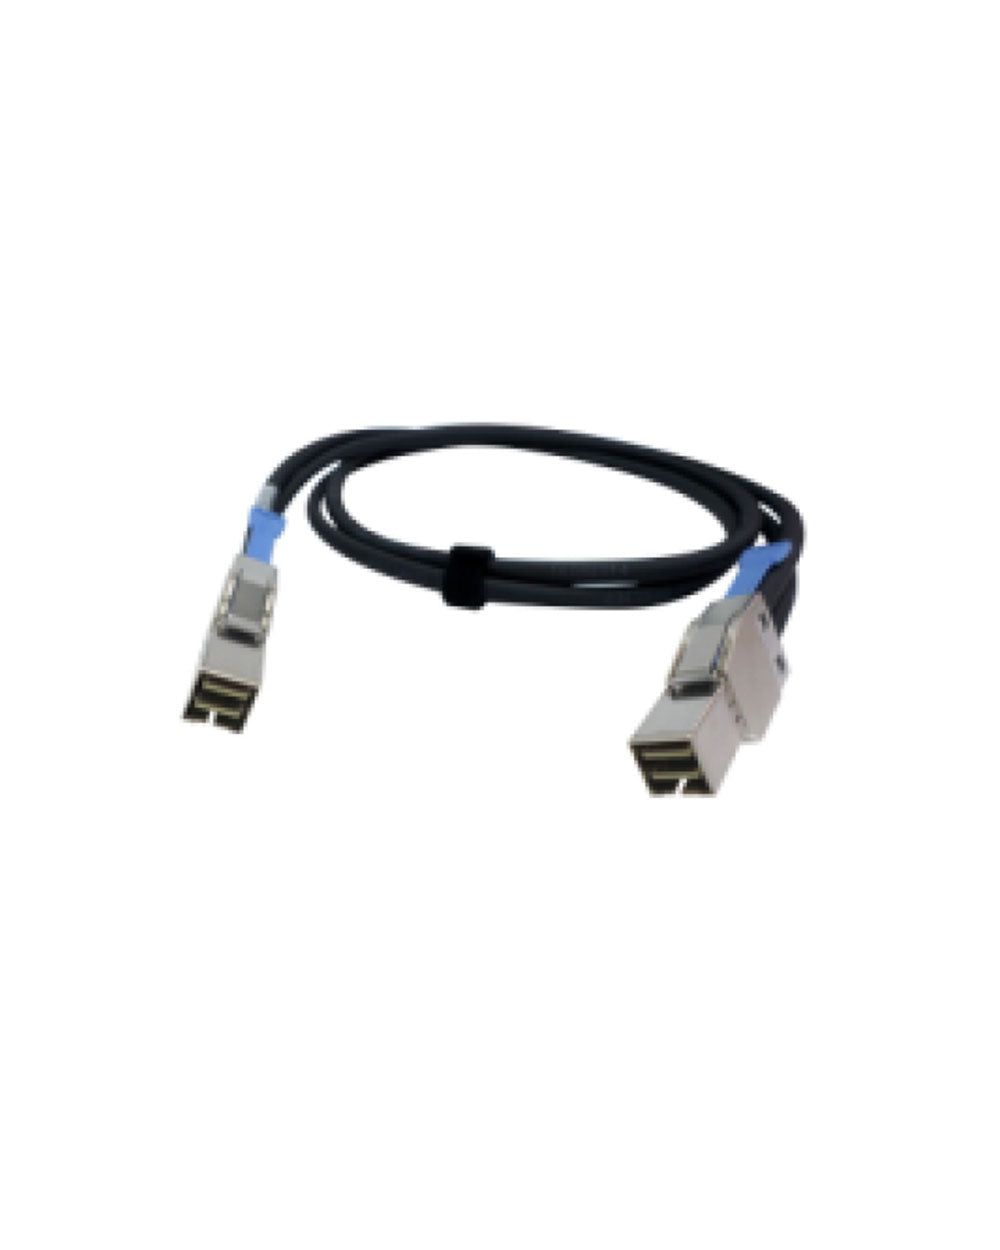 QNAP mini SAS cable (0.5M, SFF-8644)